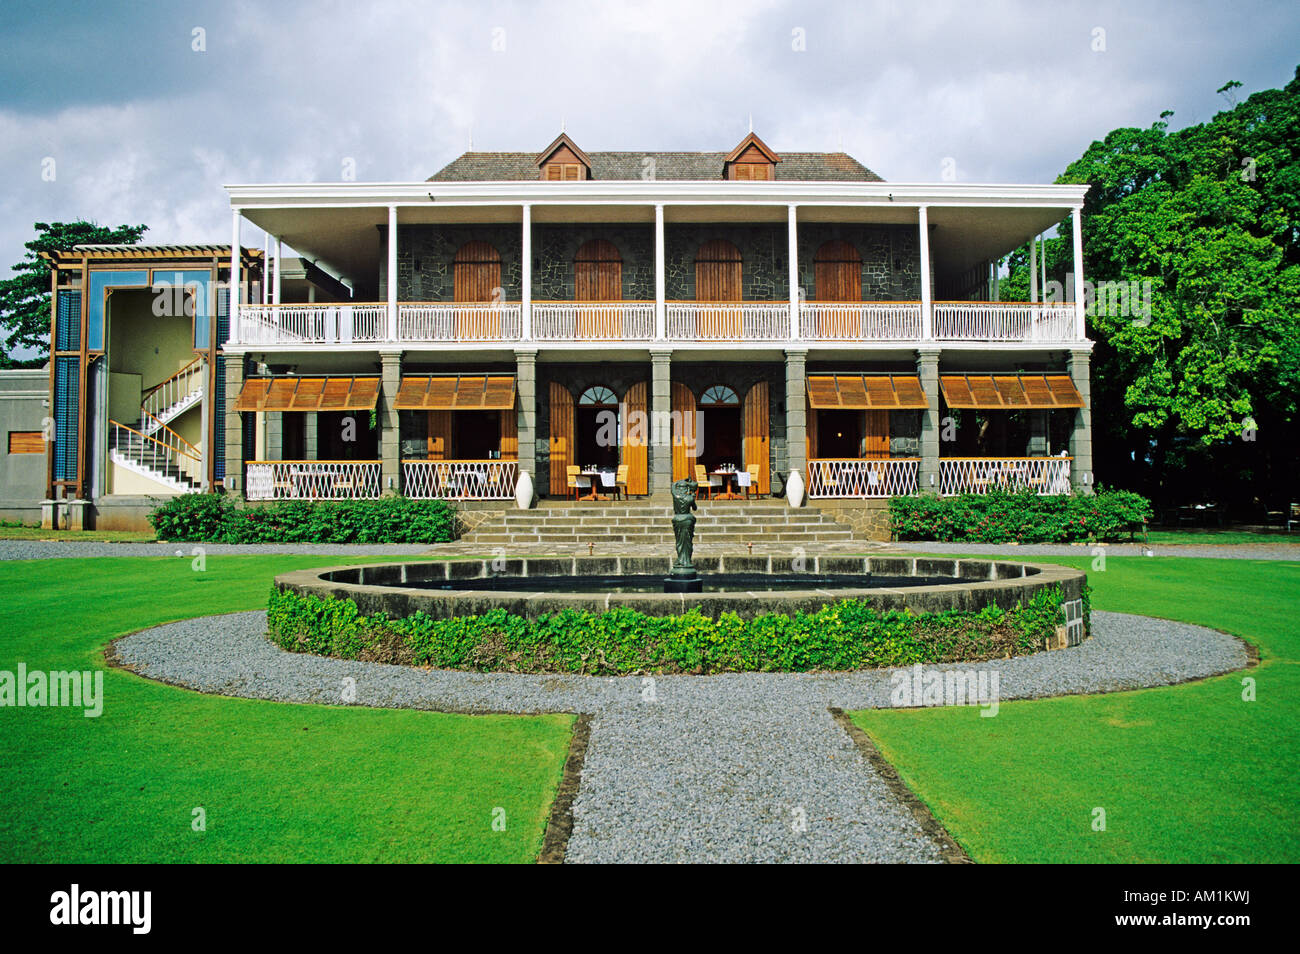 Colonial villa Chateau de Bel Ombre, Mauritius island, Africa - Stock Image